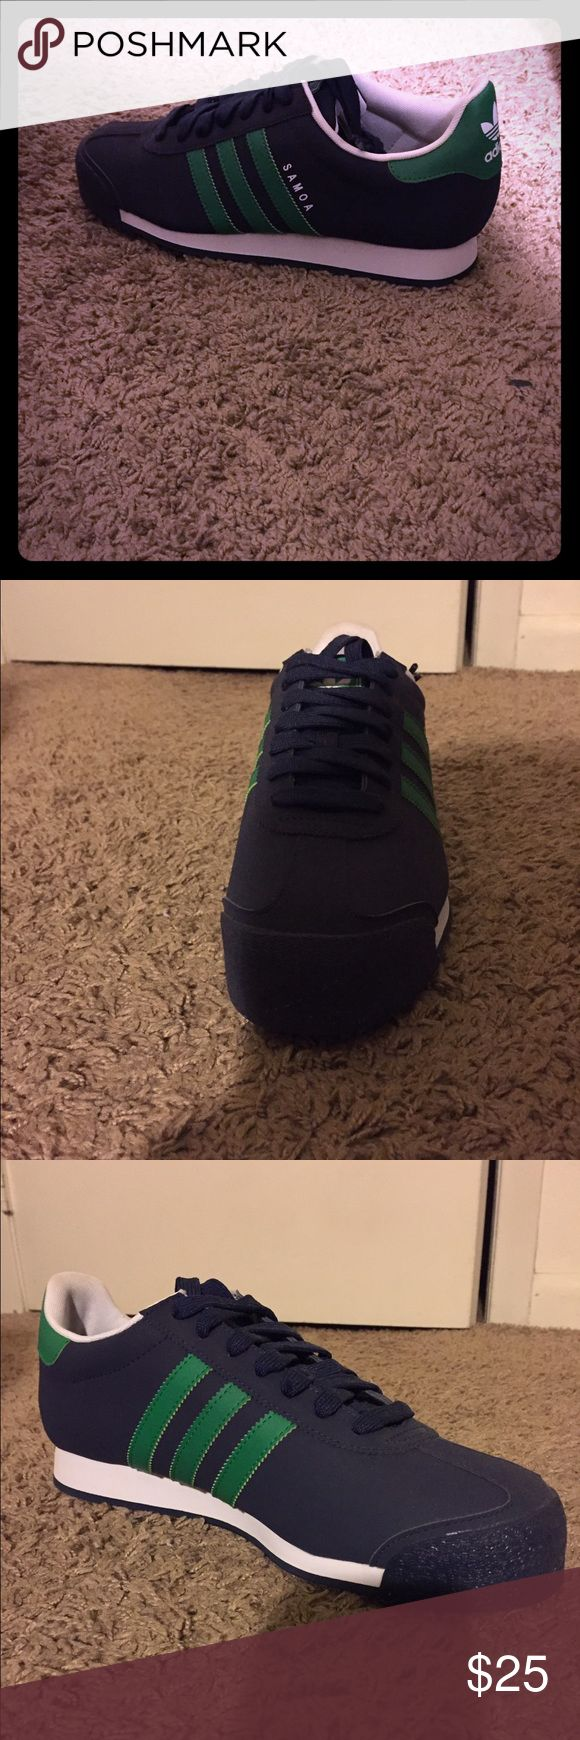 Adidas soma shoes Green and blue. Never worn Adidas Shoes Sneakers